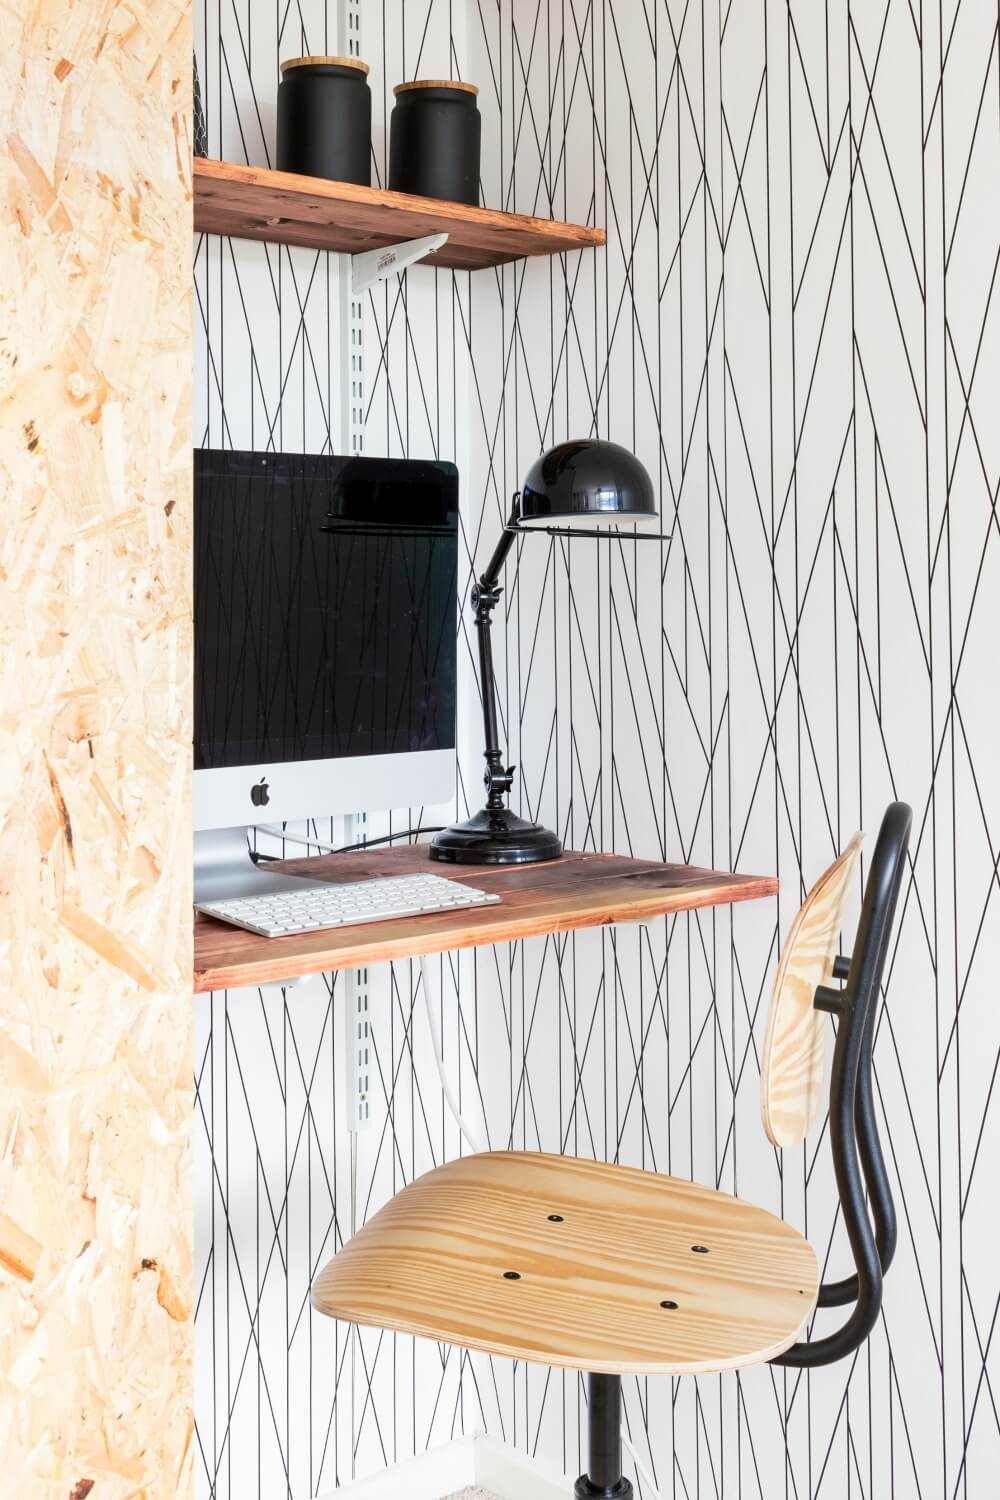 Scandi style black desk lamp from my modern lighting collection / grillo designs